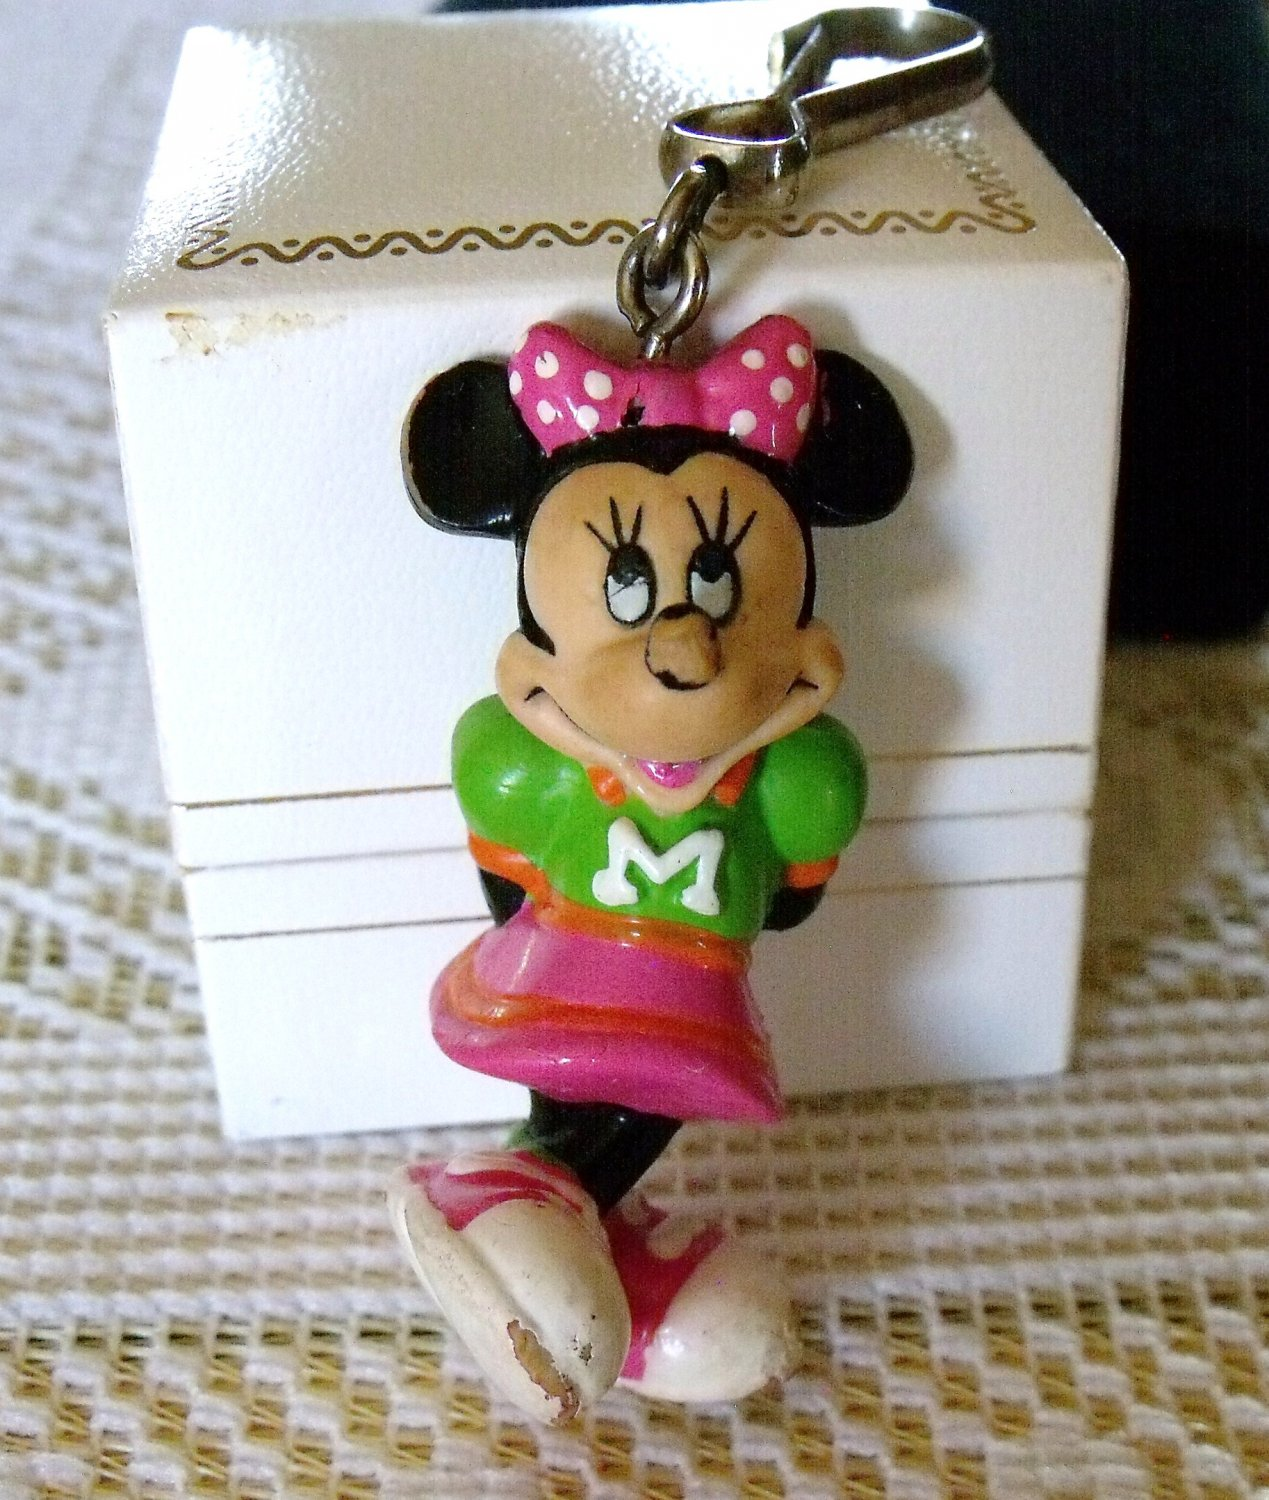 Minnie Mouse Rubber Figurine Vintage Key Chain Charm Jewelry